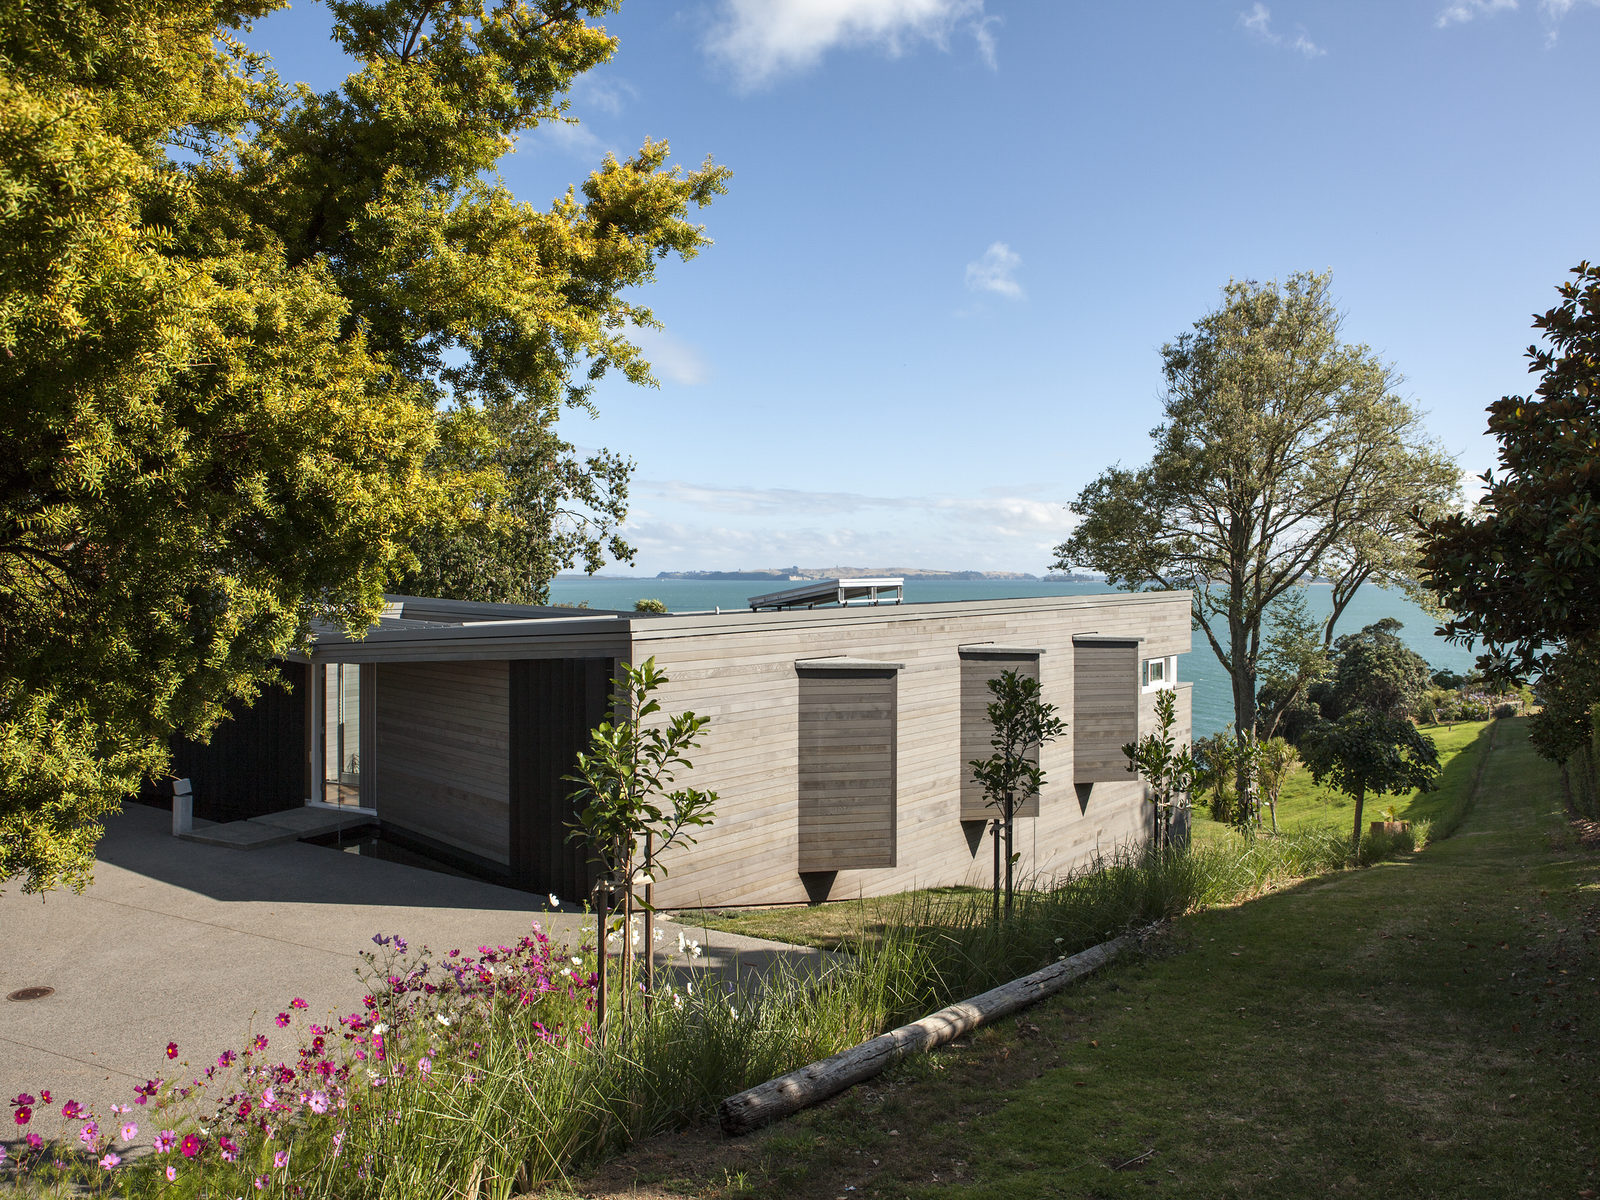 auckland based architecture firm daniel marshall architects